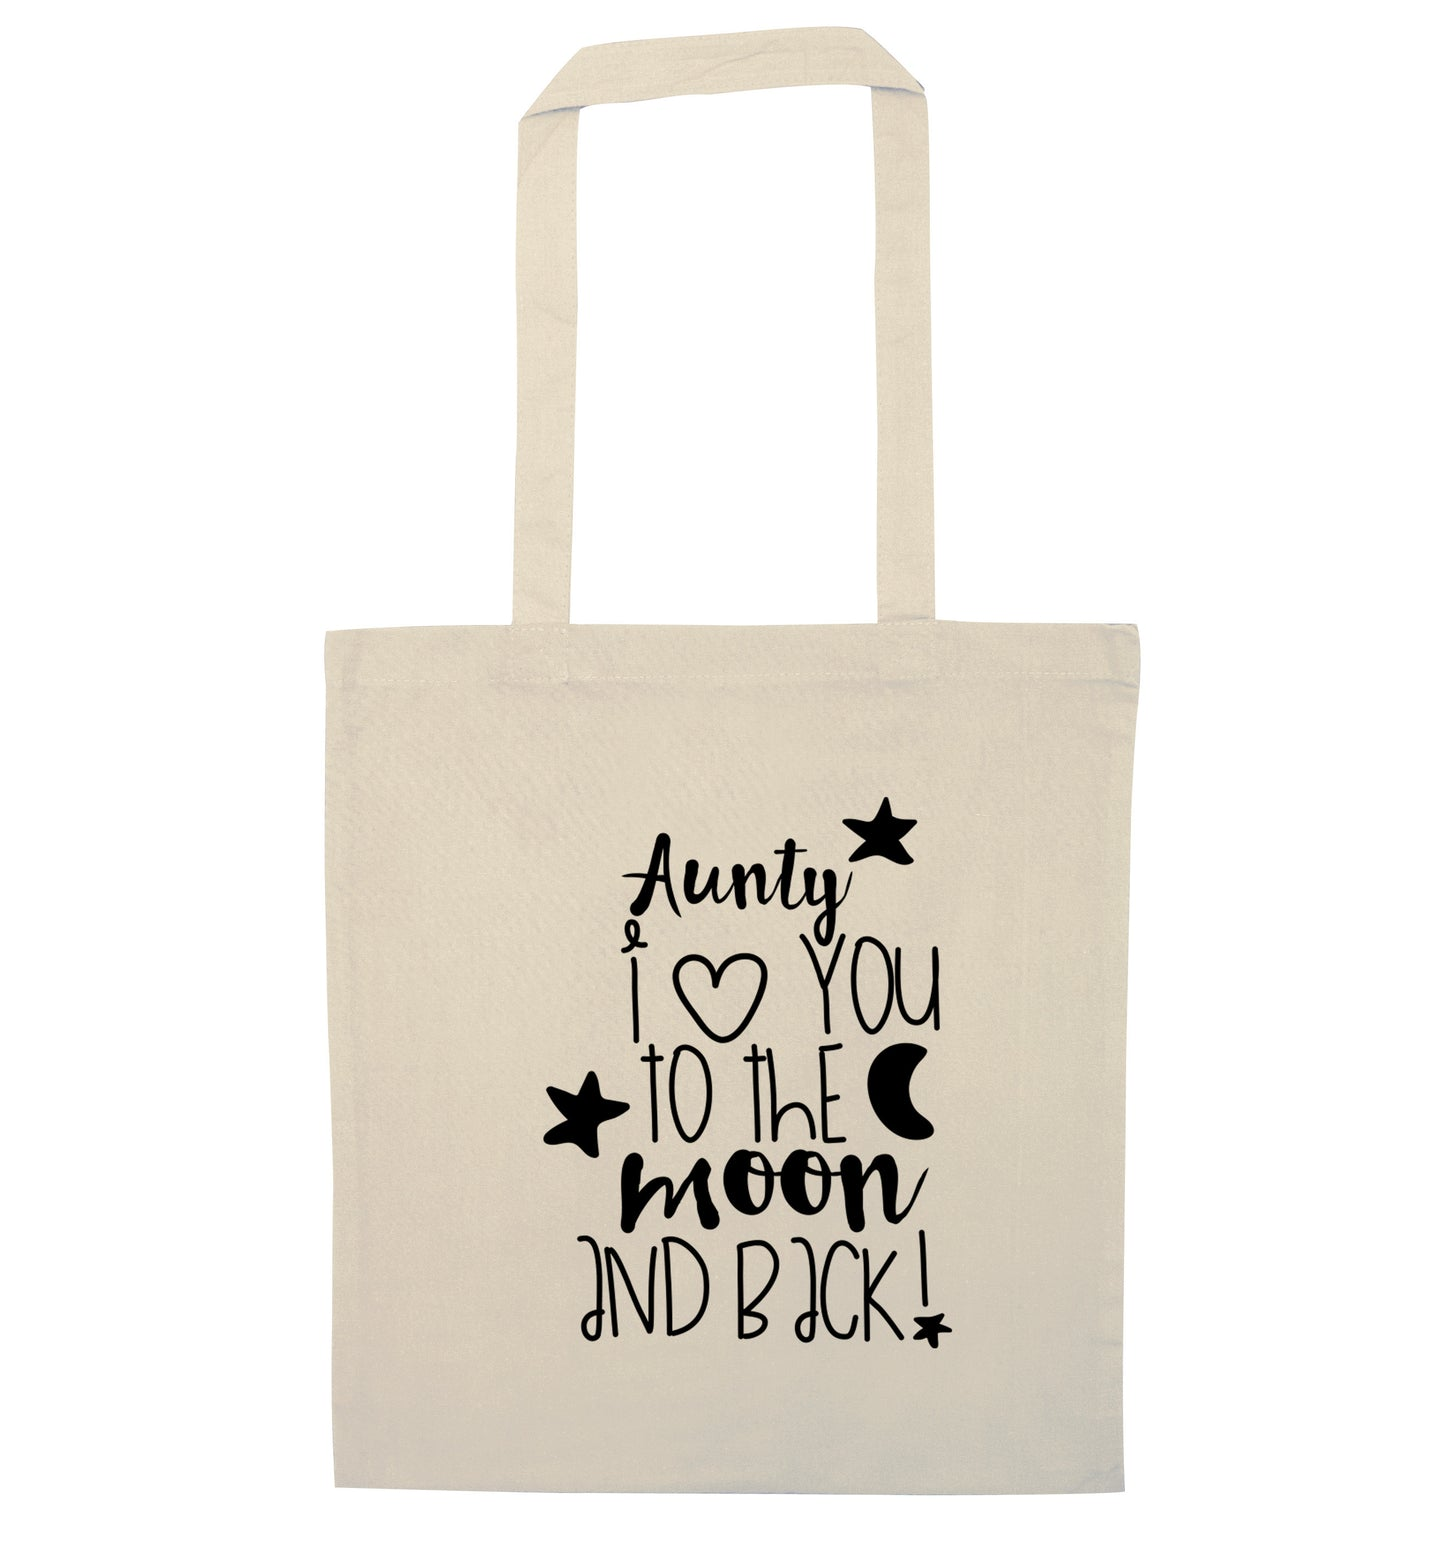 Aunty I love you to the moon and back natural tote bag